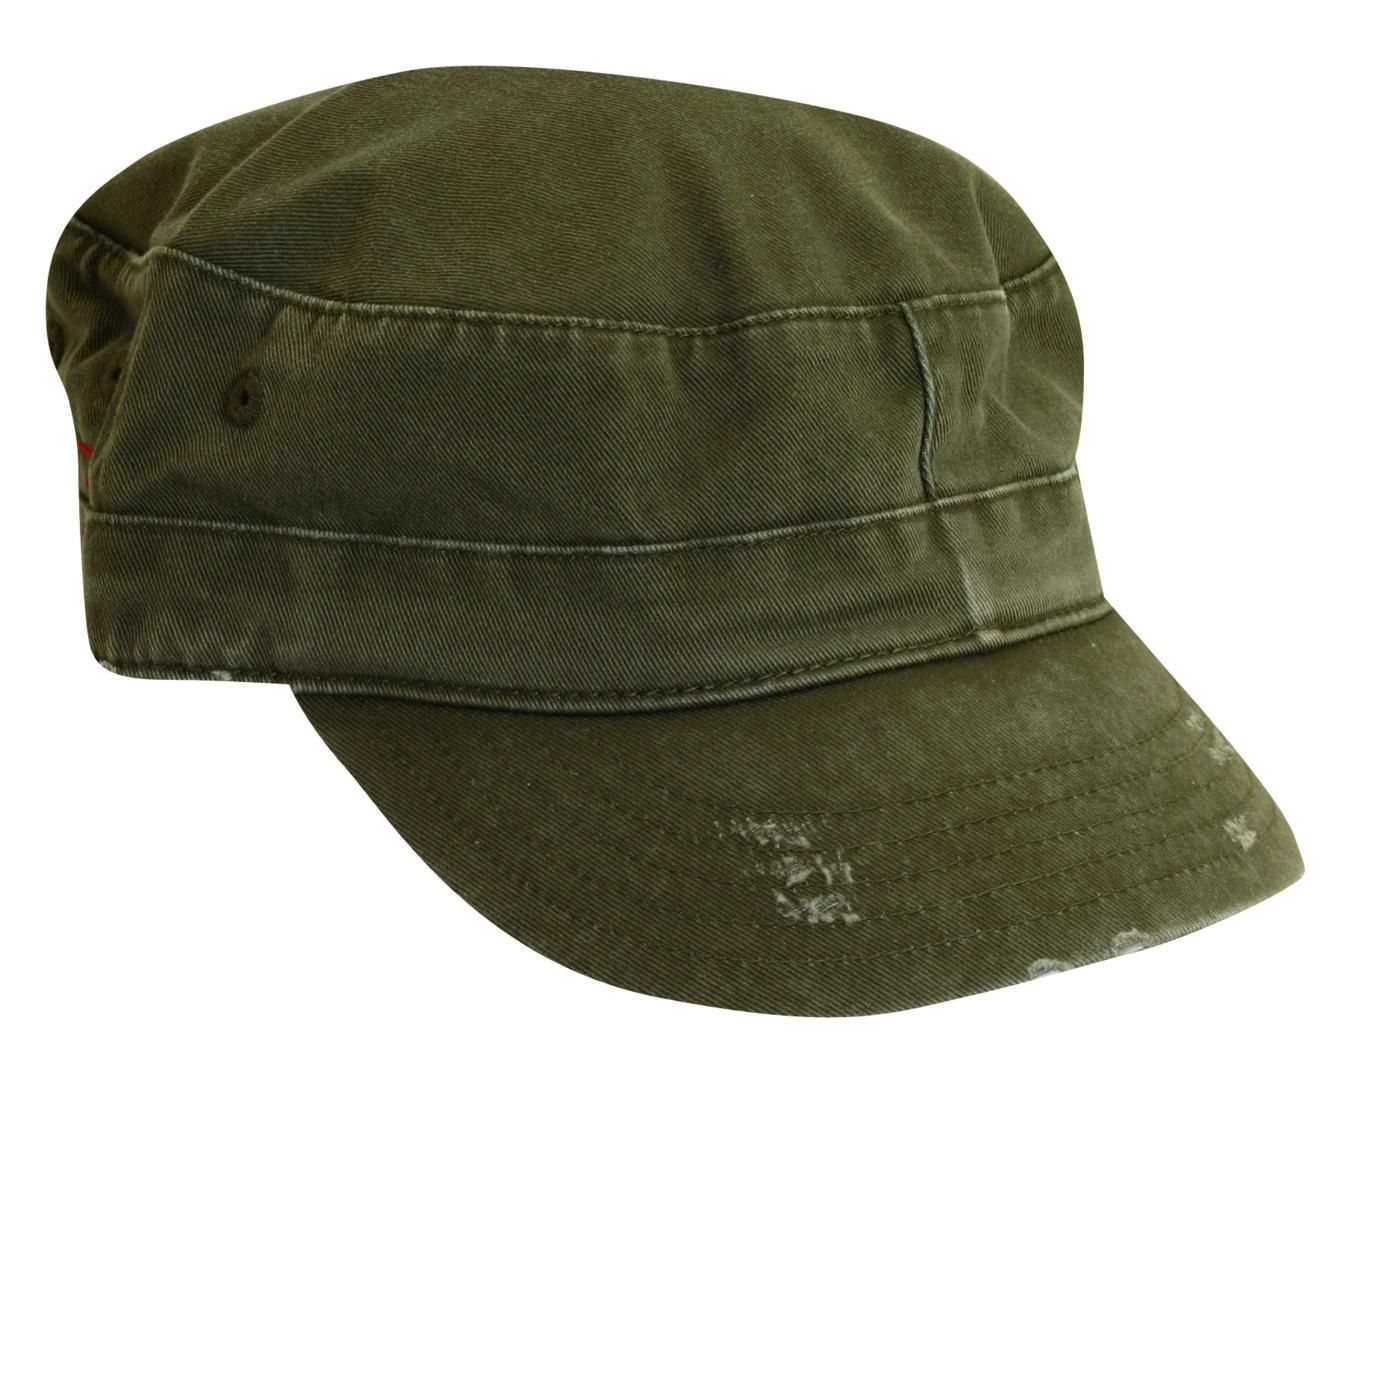 4d43a74b9bb Military Style Cap (Distressed Cotton) by Dorfman Pacific. The latest style  in the hot distressed look. Features and Benefits  100% cotton Popular ...